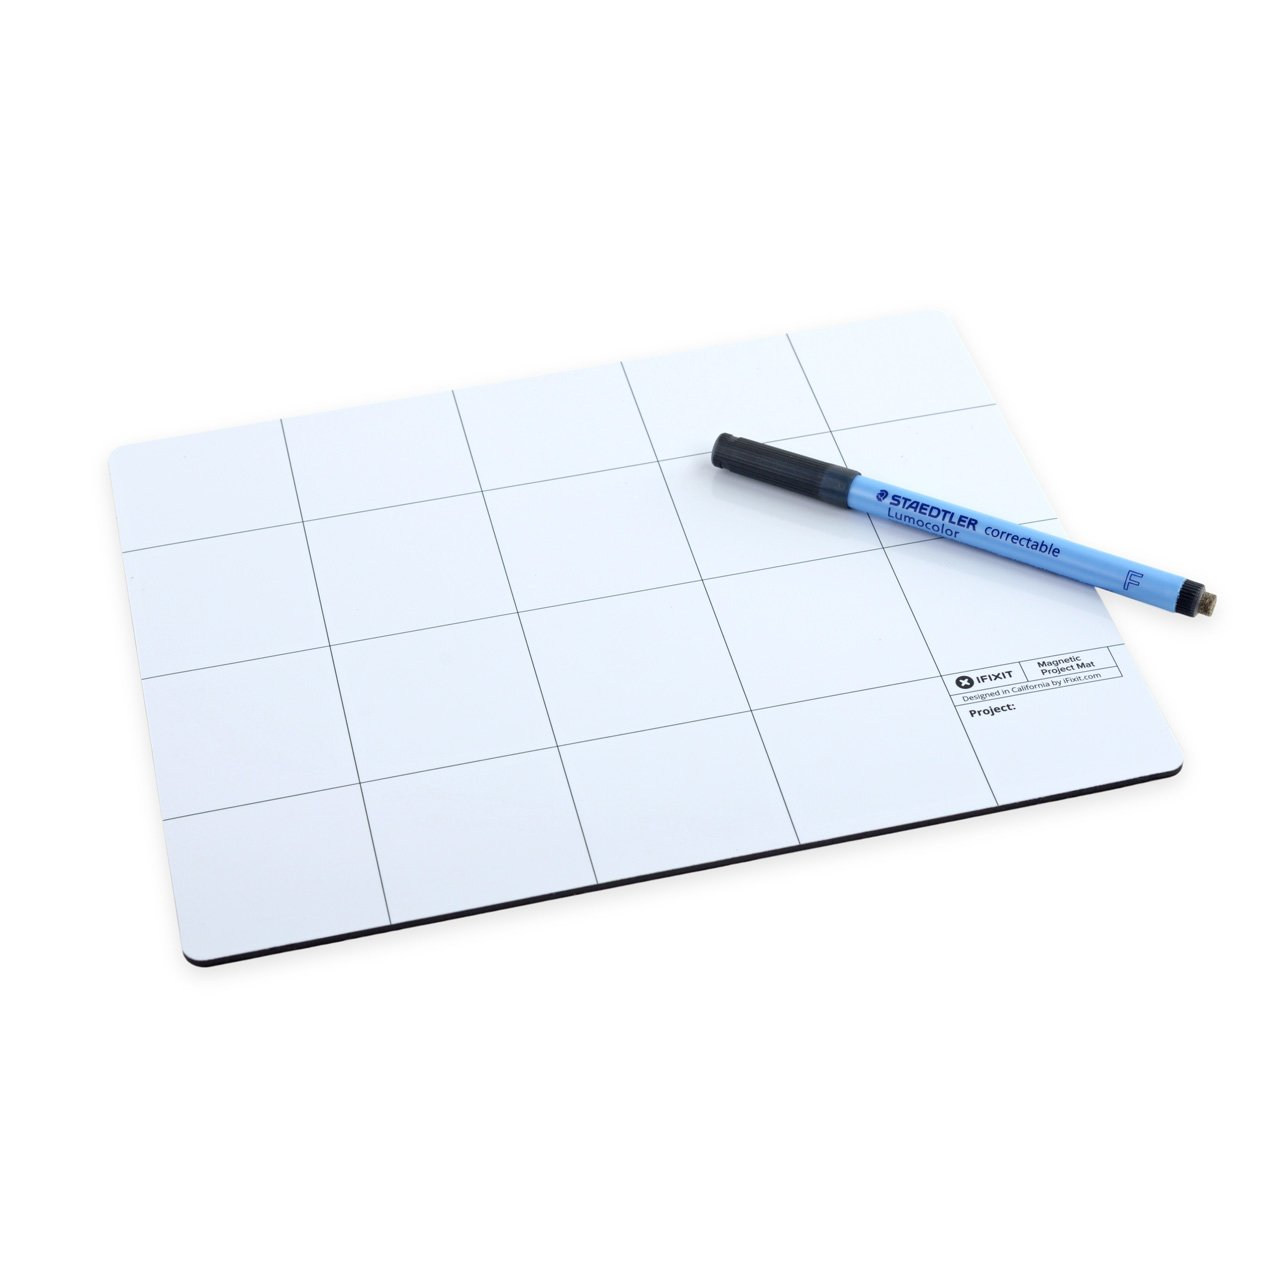 iFixit Magnetic Project Mat - Rewritable Magnetic Work Surface